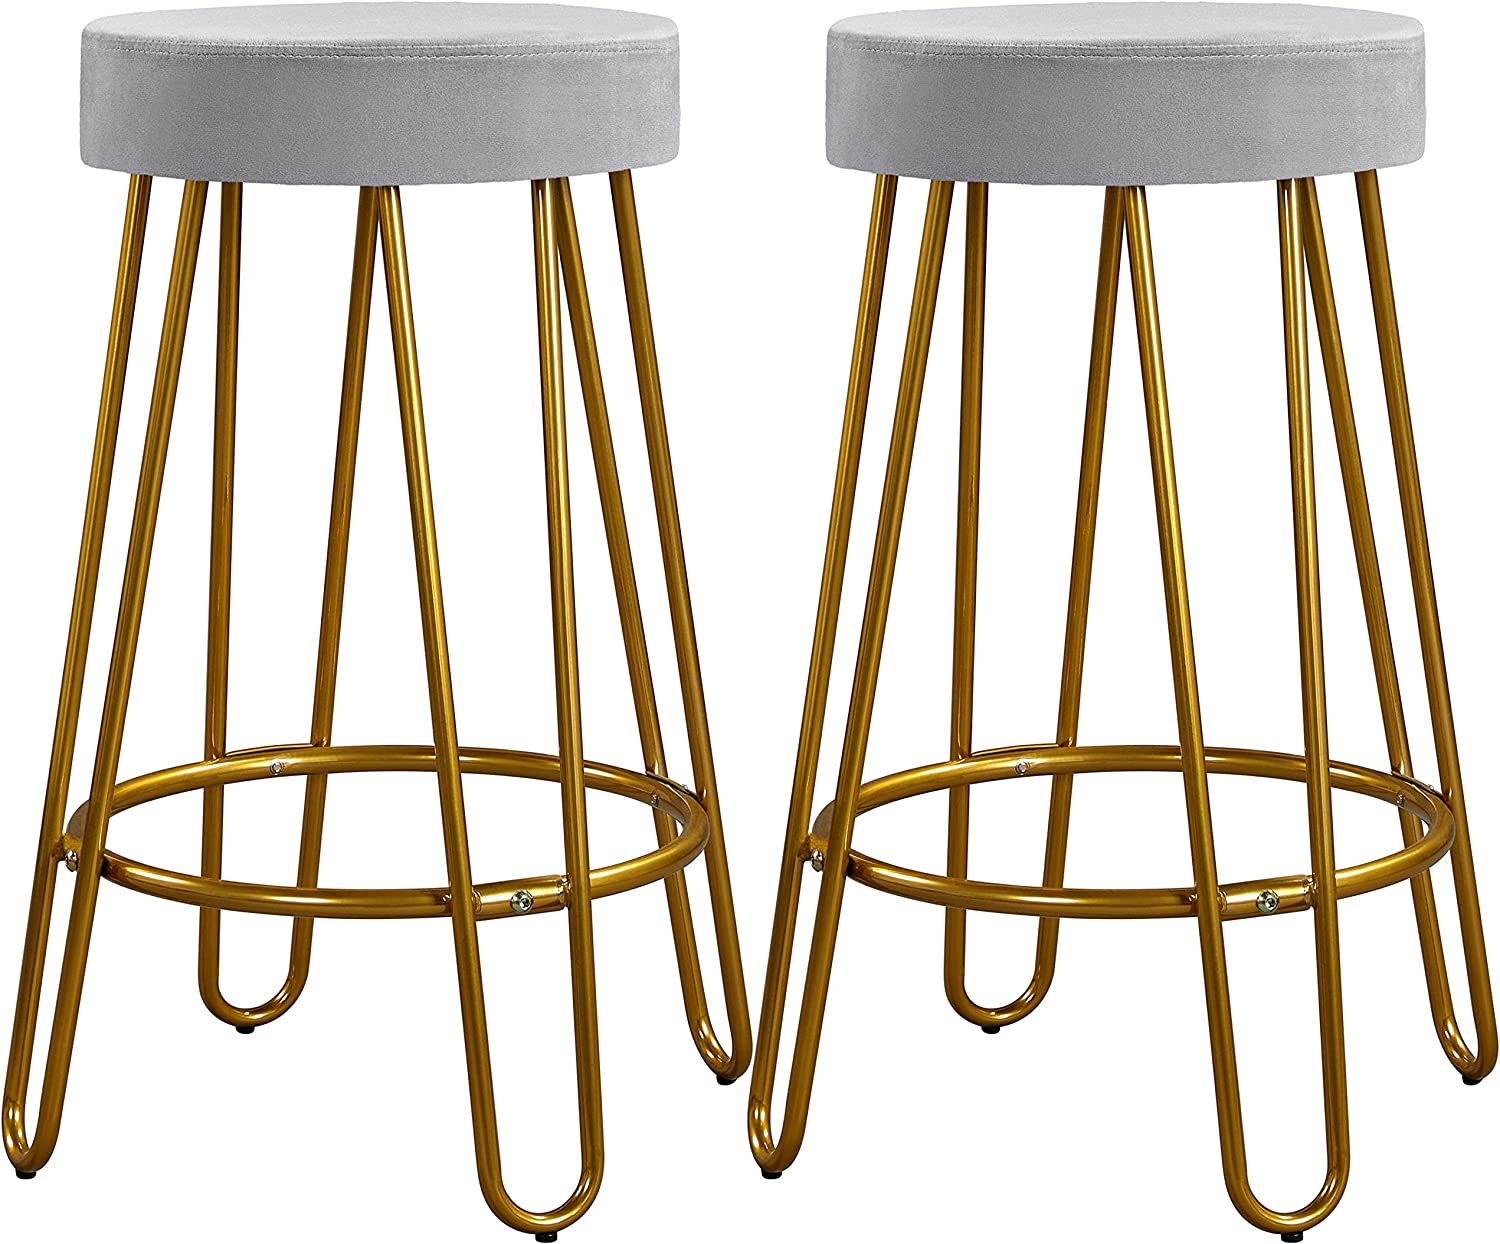 5 popular Yaheetech 26.5inch Living Room Long Beach Mall Backless Round Stools Upholstered